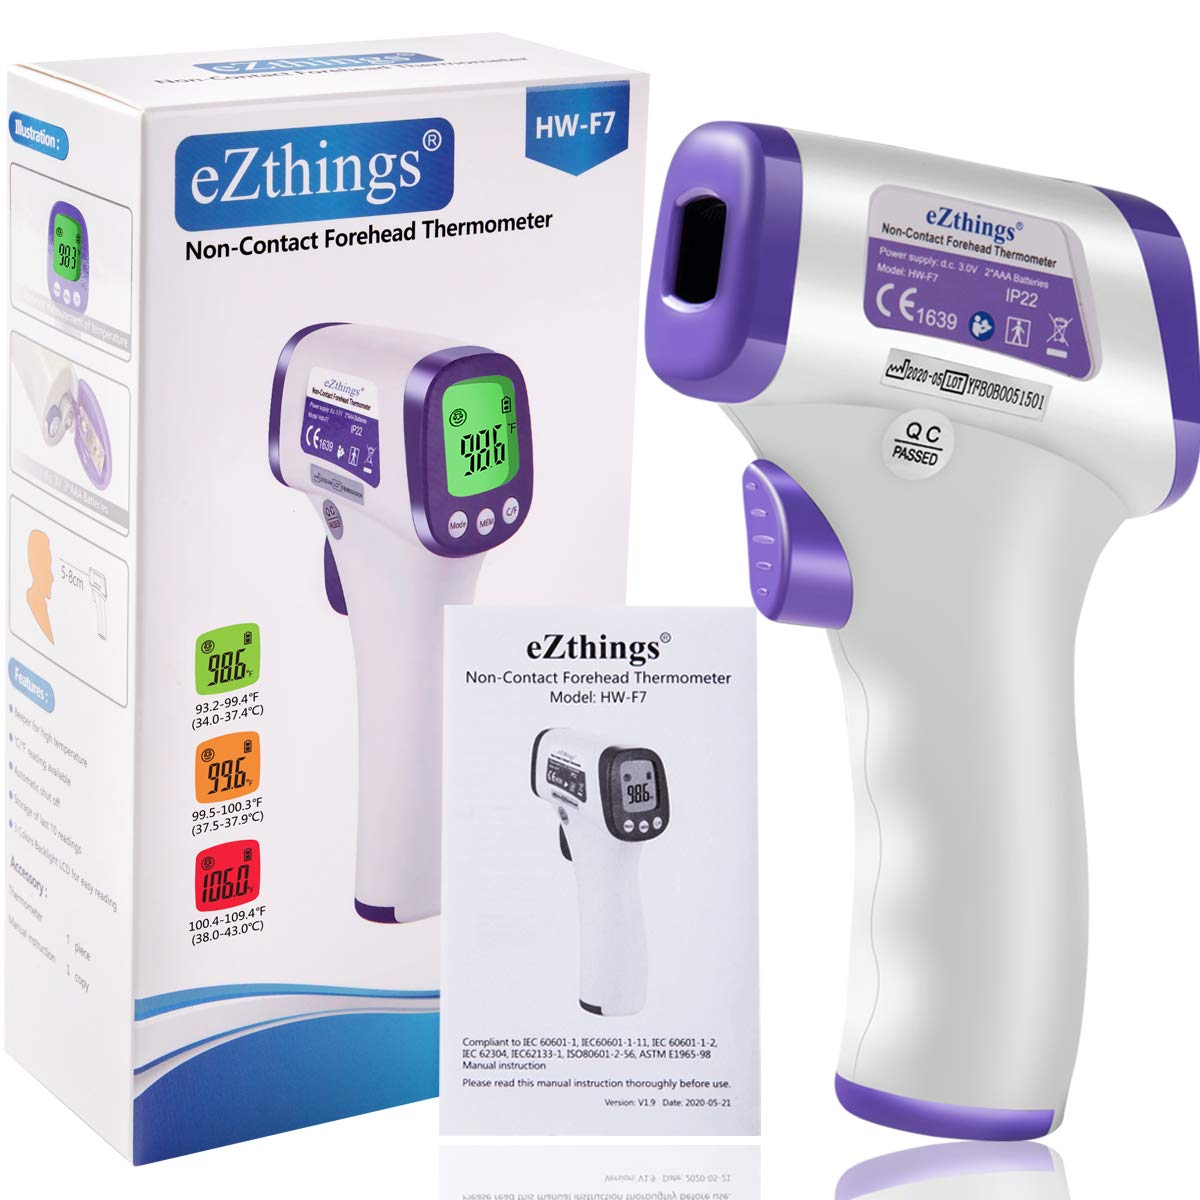 Heavy Duty LCD Display Non-Contact Infrared Forehead Thermometer for Medical Offices, Hospitals